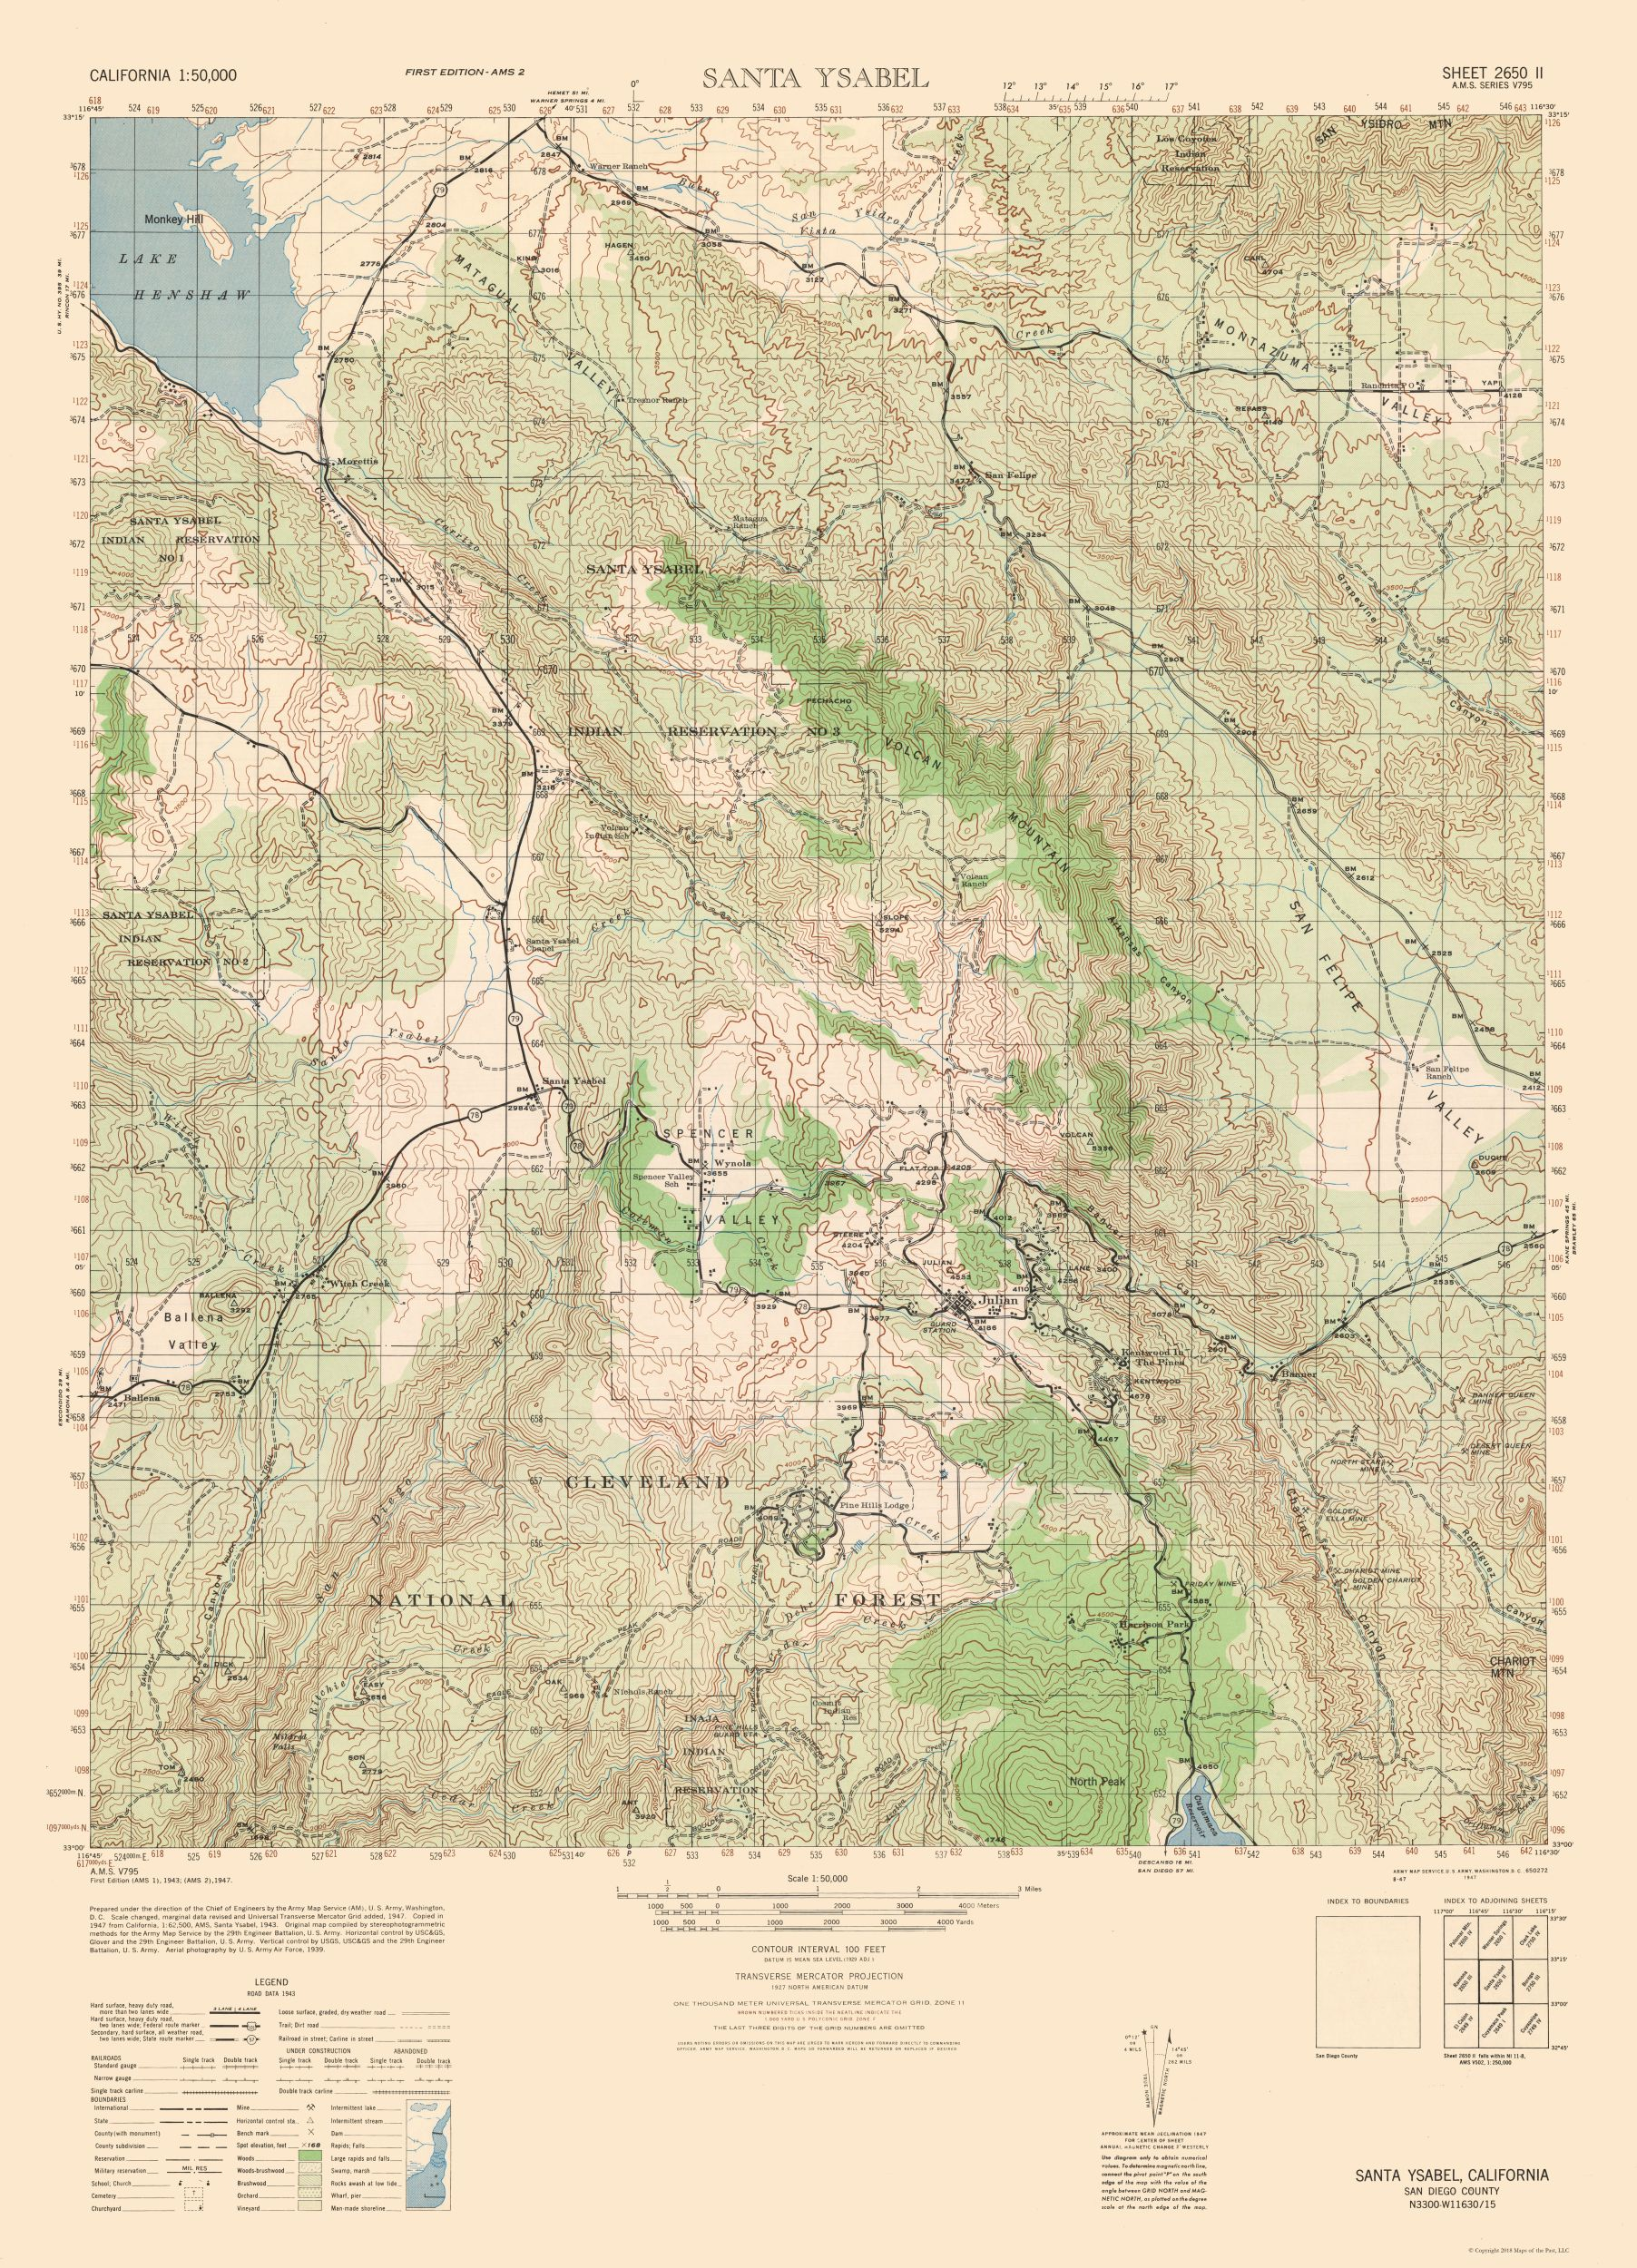 Historical Topographical Maps Santa Ysabel Sheet Us Army 1943 - Us-army-topographic-maps